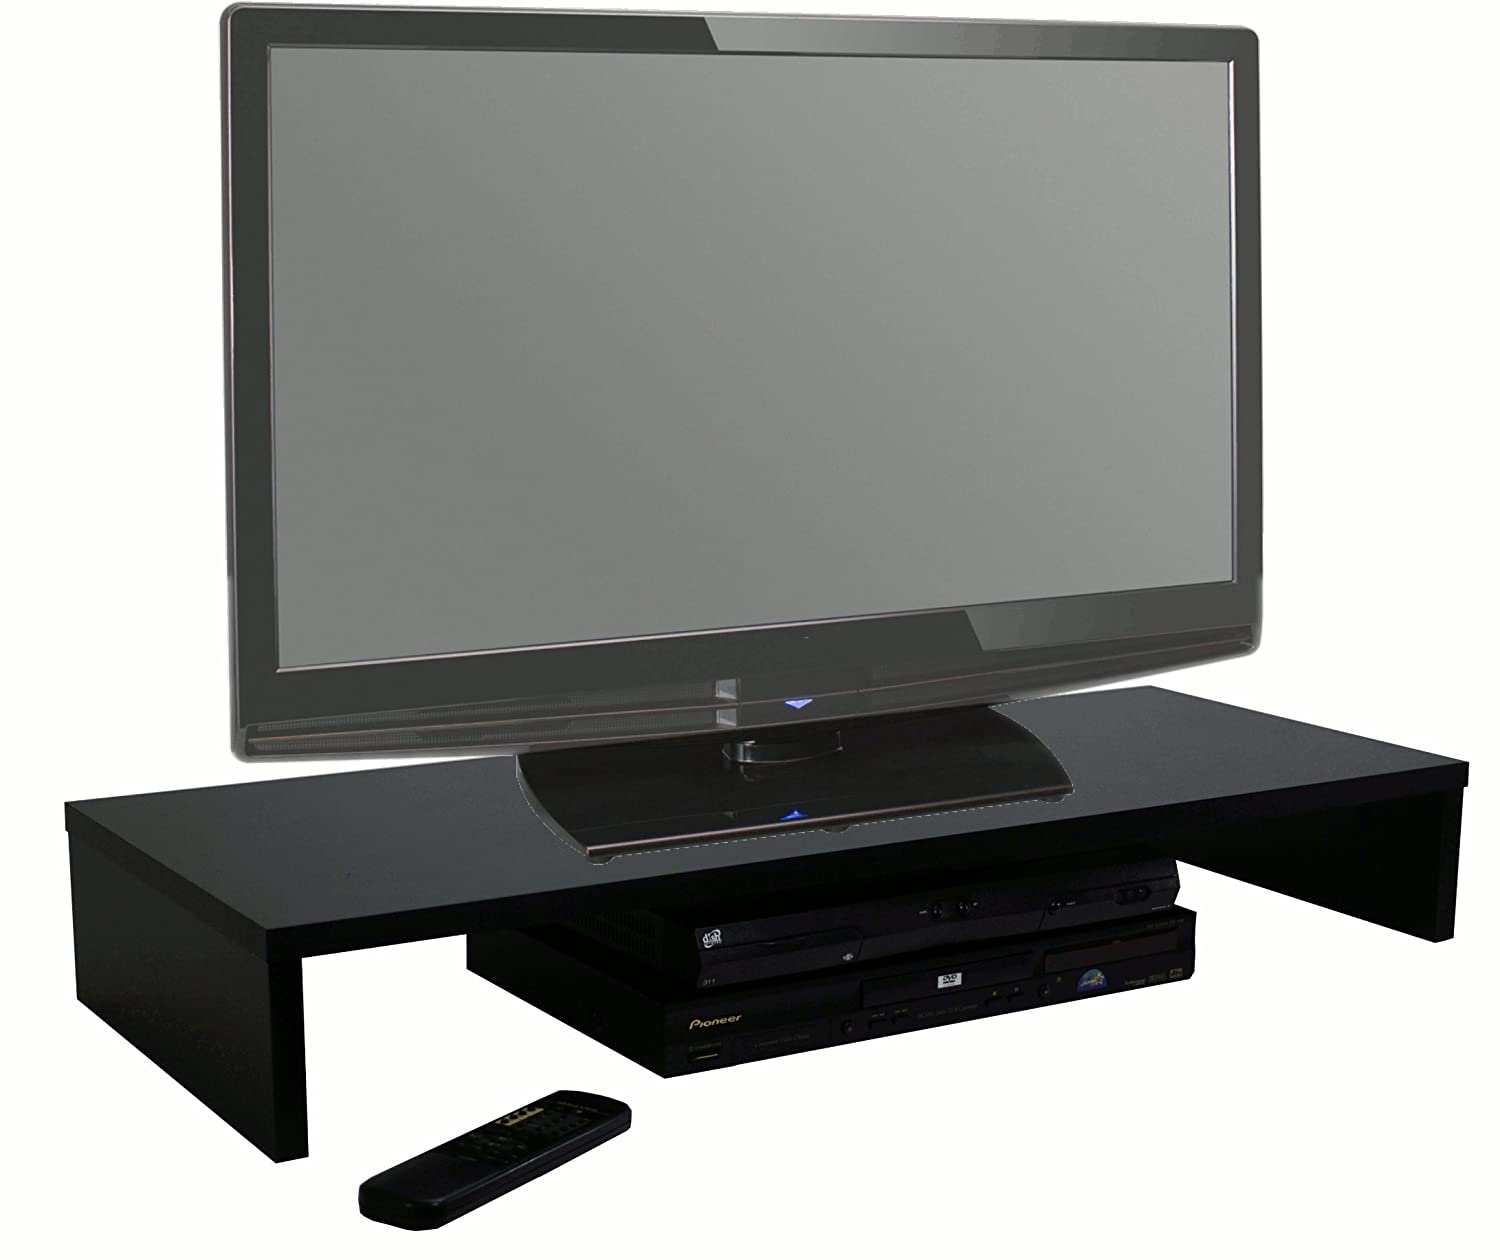 Table De Television Awesome Table De Television With Table De  # Table Pour Tv Lcd En Bois